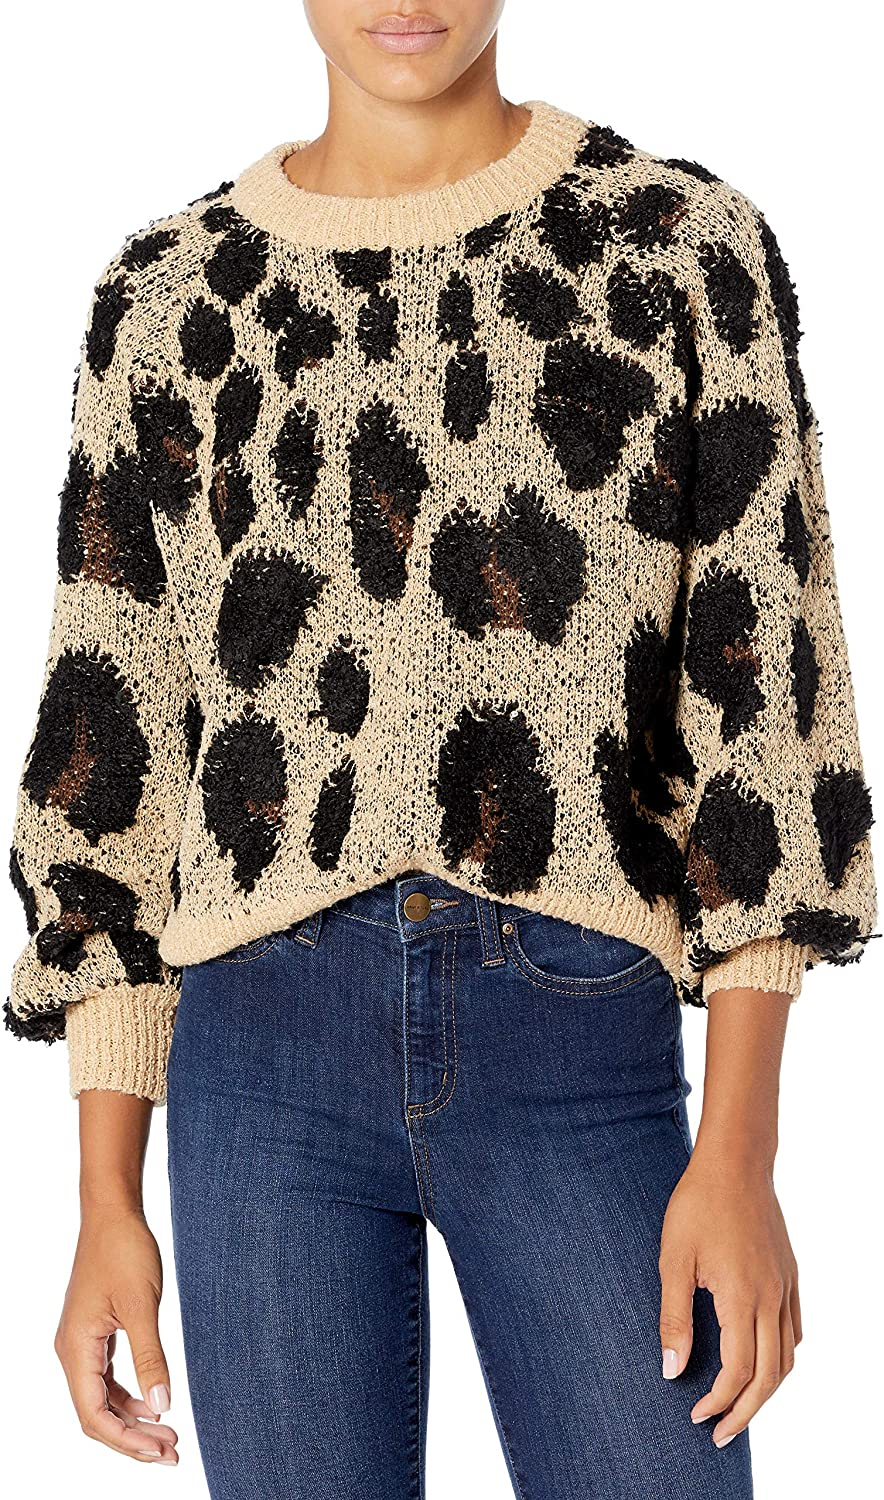 Mud Pie Max 67% OFF Women's Large-scale sale Sleeve Long